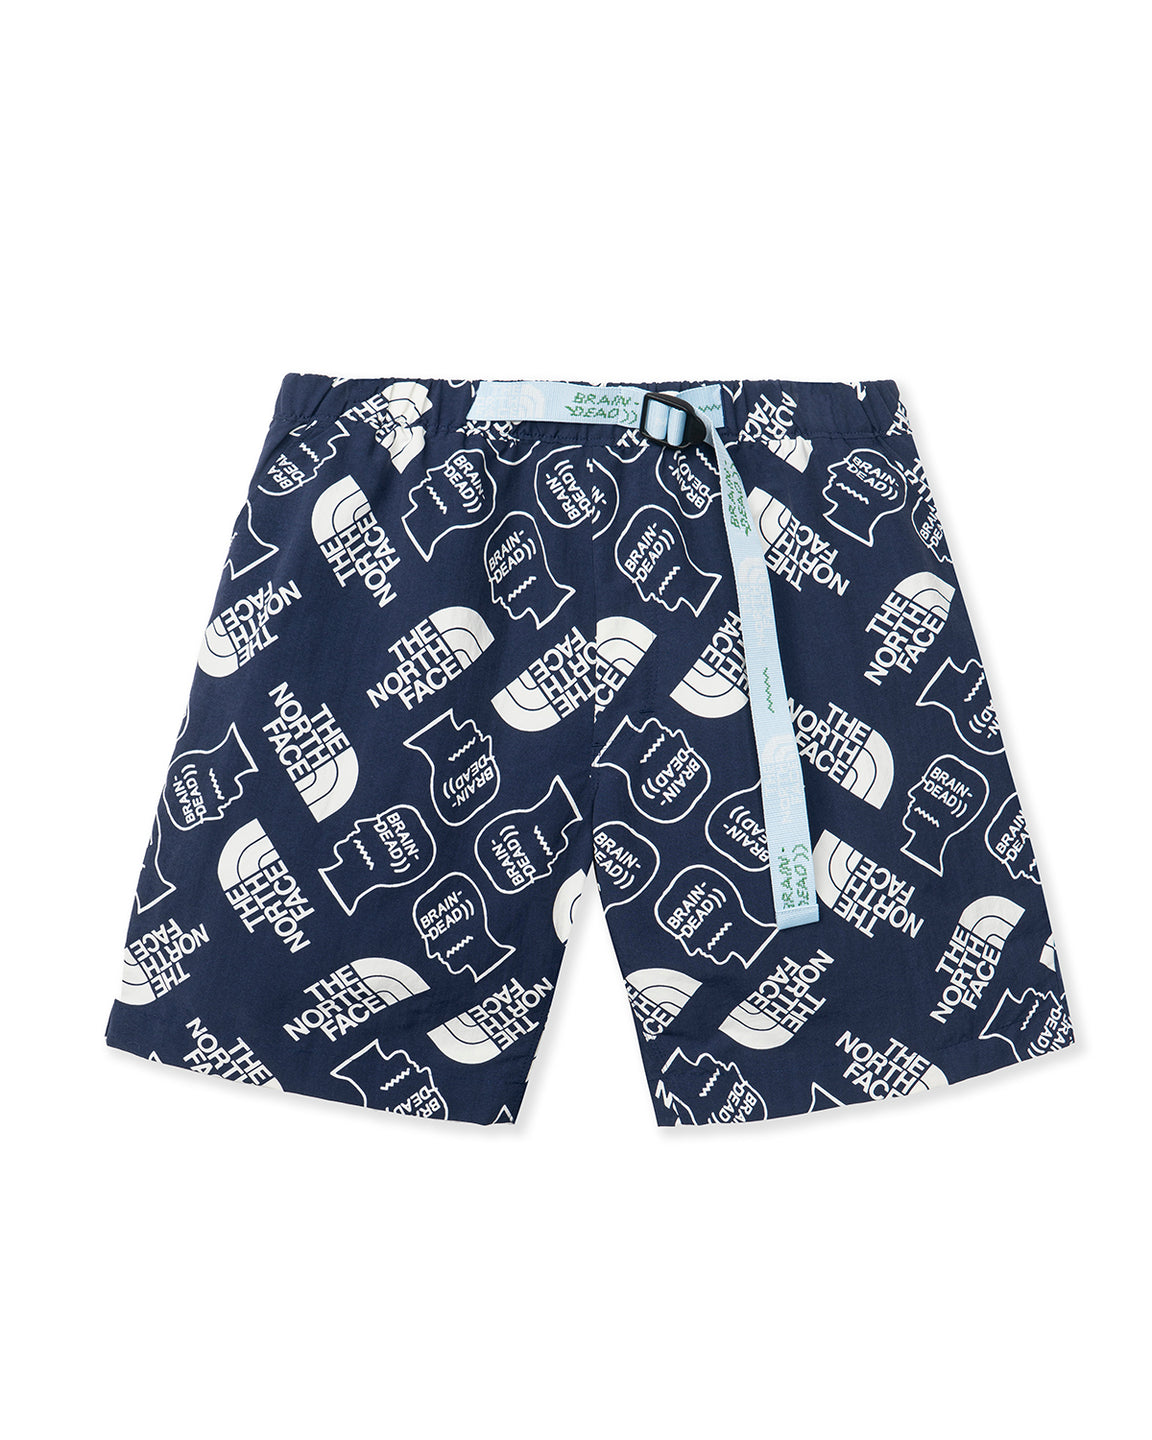 The North Face x Brain Dead Baggy Climber Short - Navy